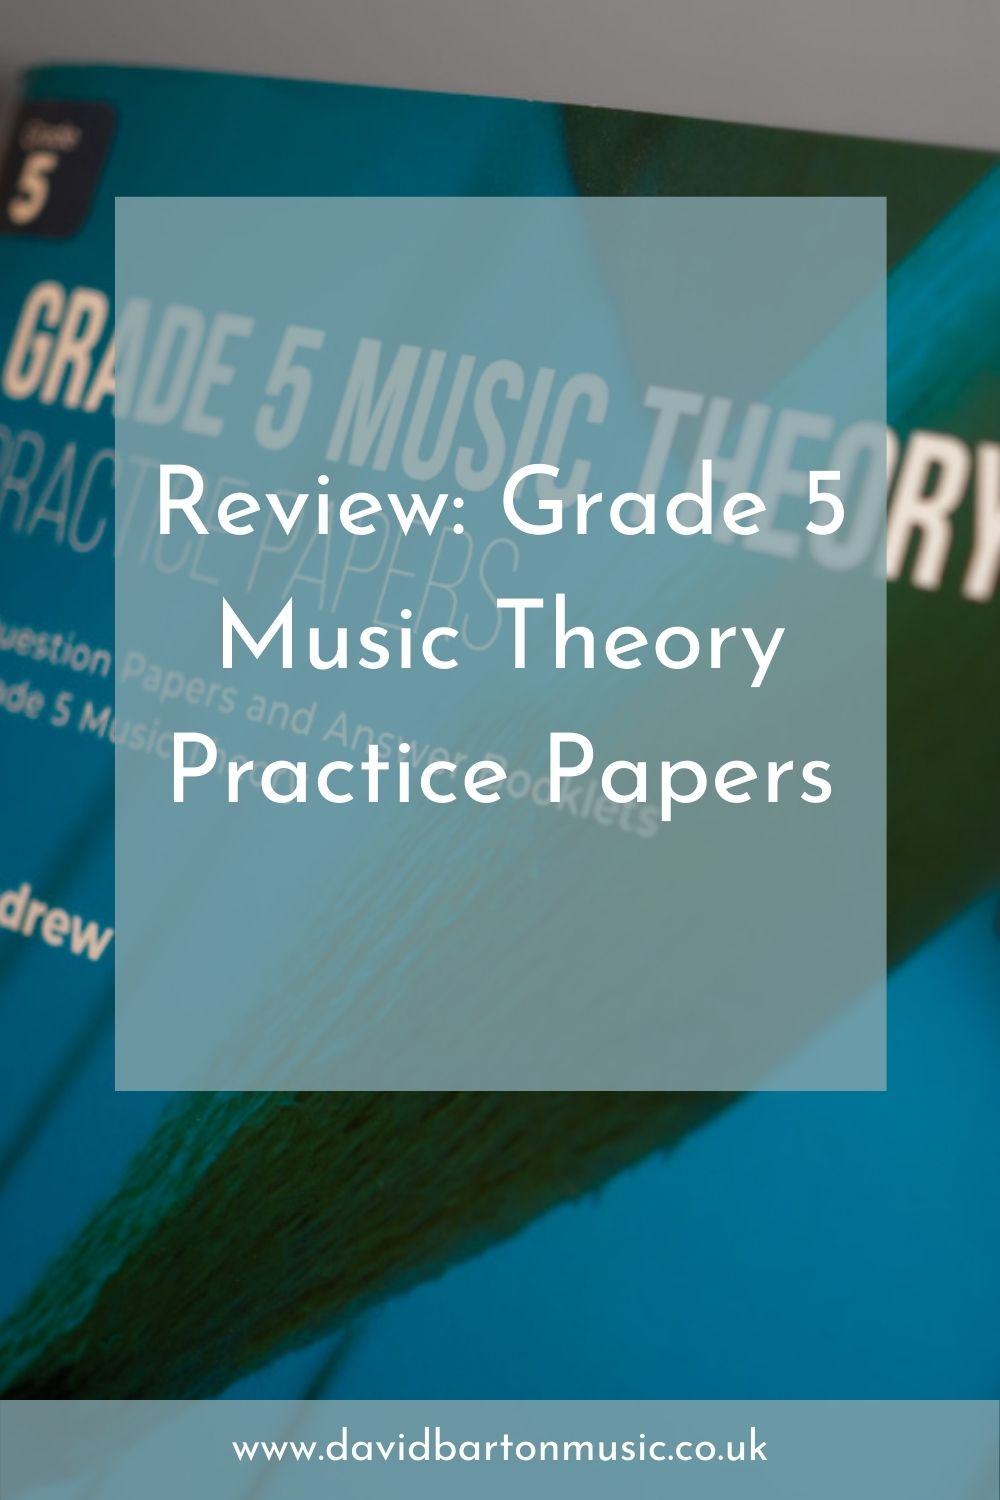 Review: Grade 5 Music Theory Practice Papers - Pinterest graphic